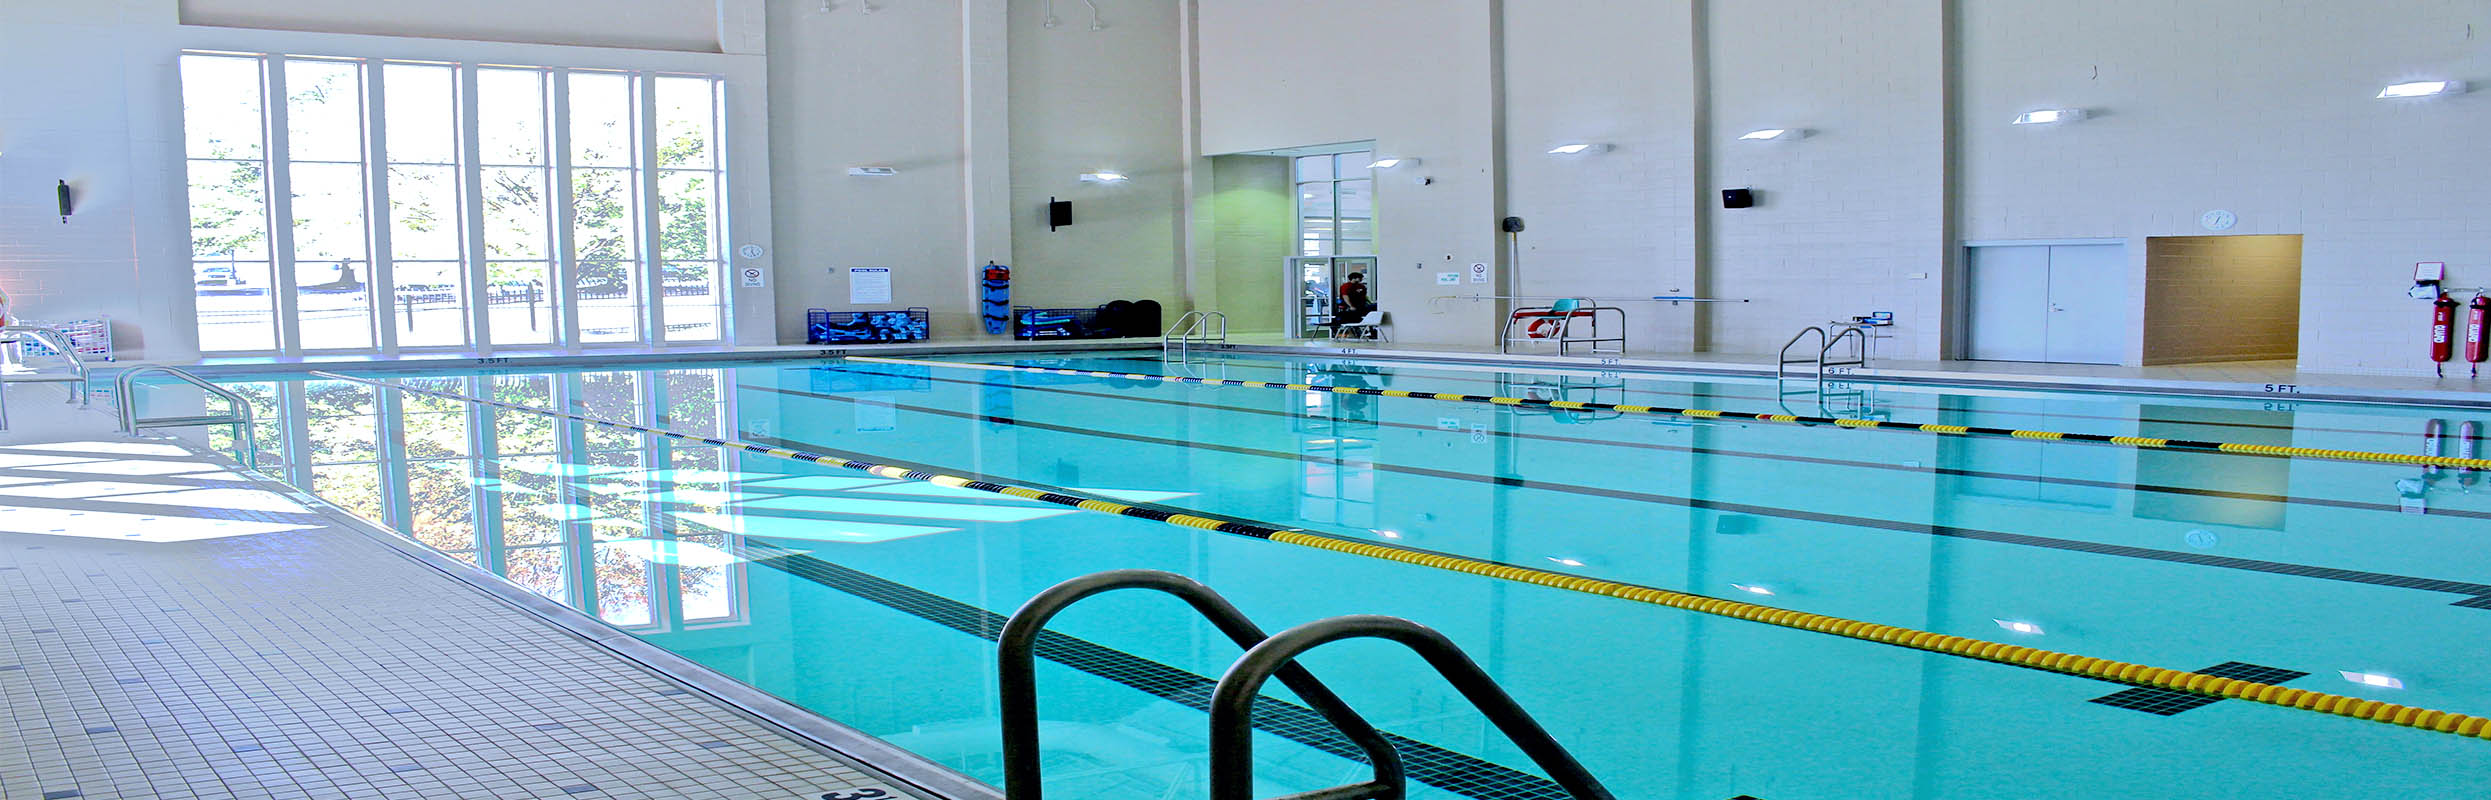 Marietta Recreation and Wellness Lap Pool